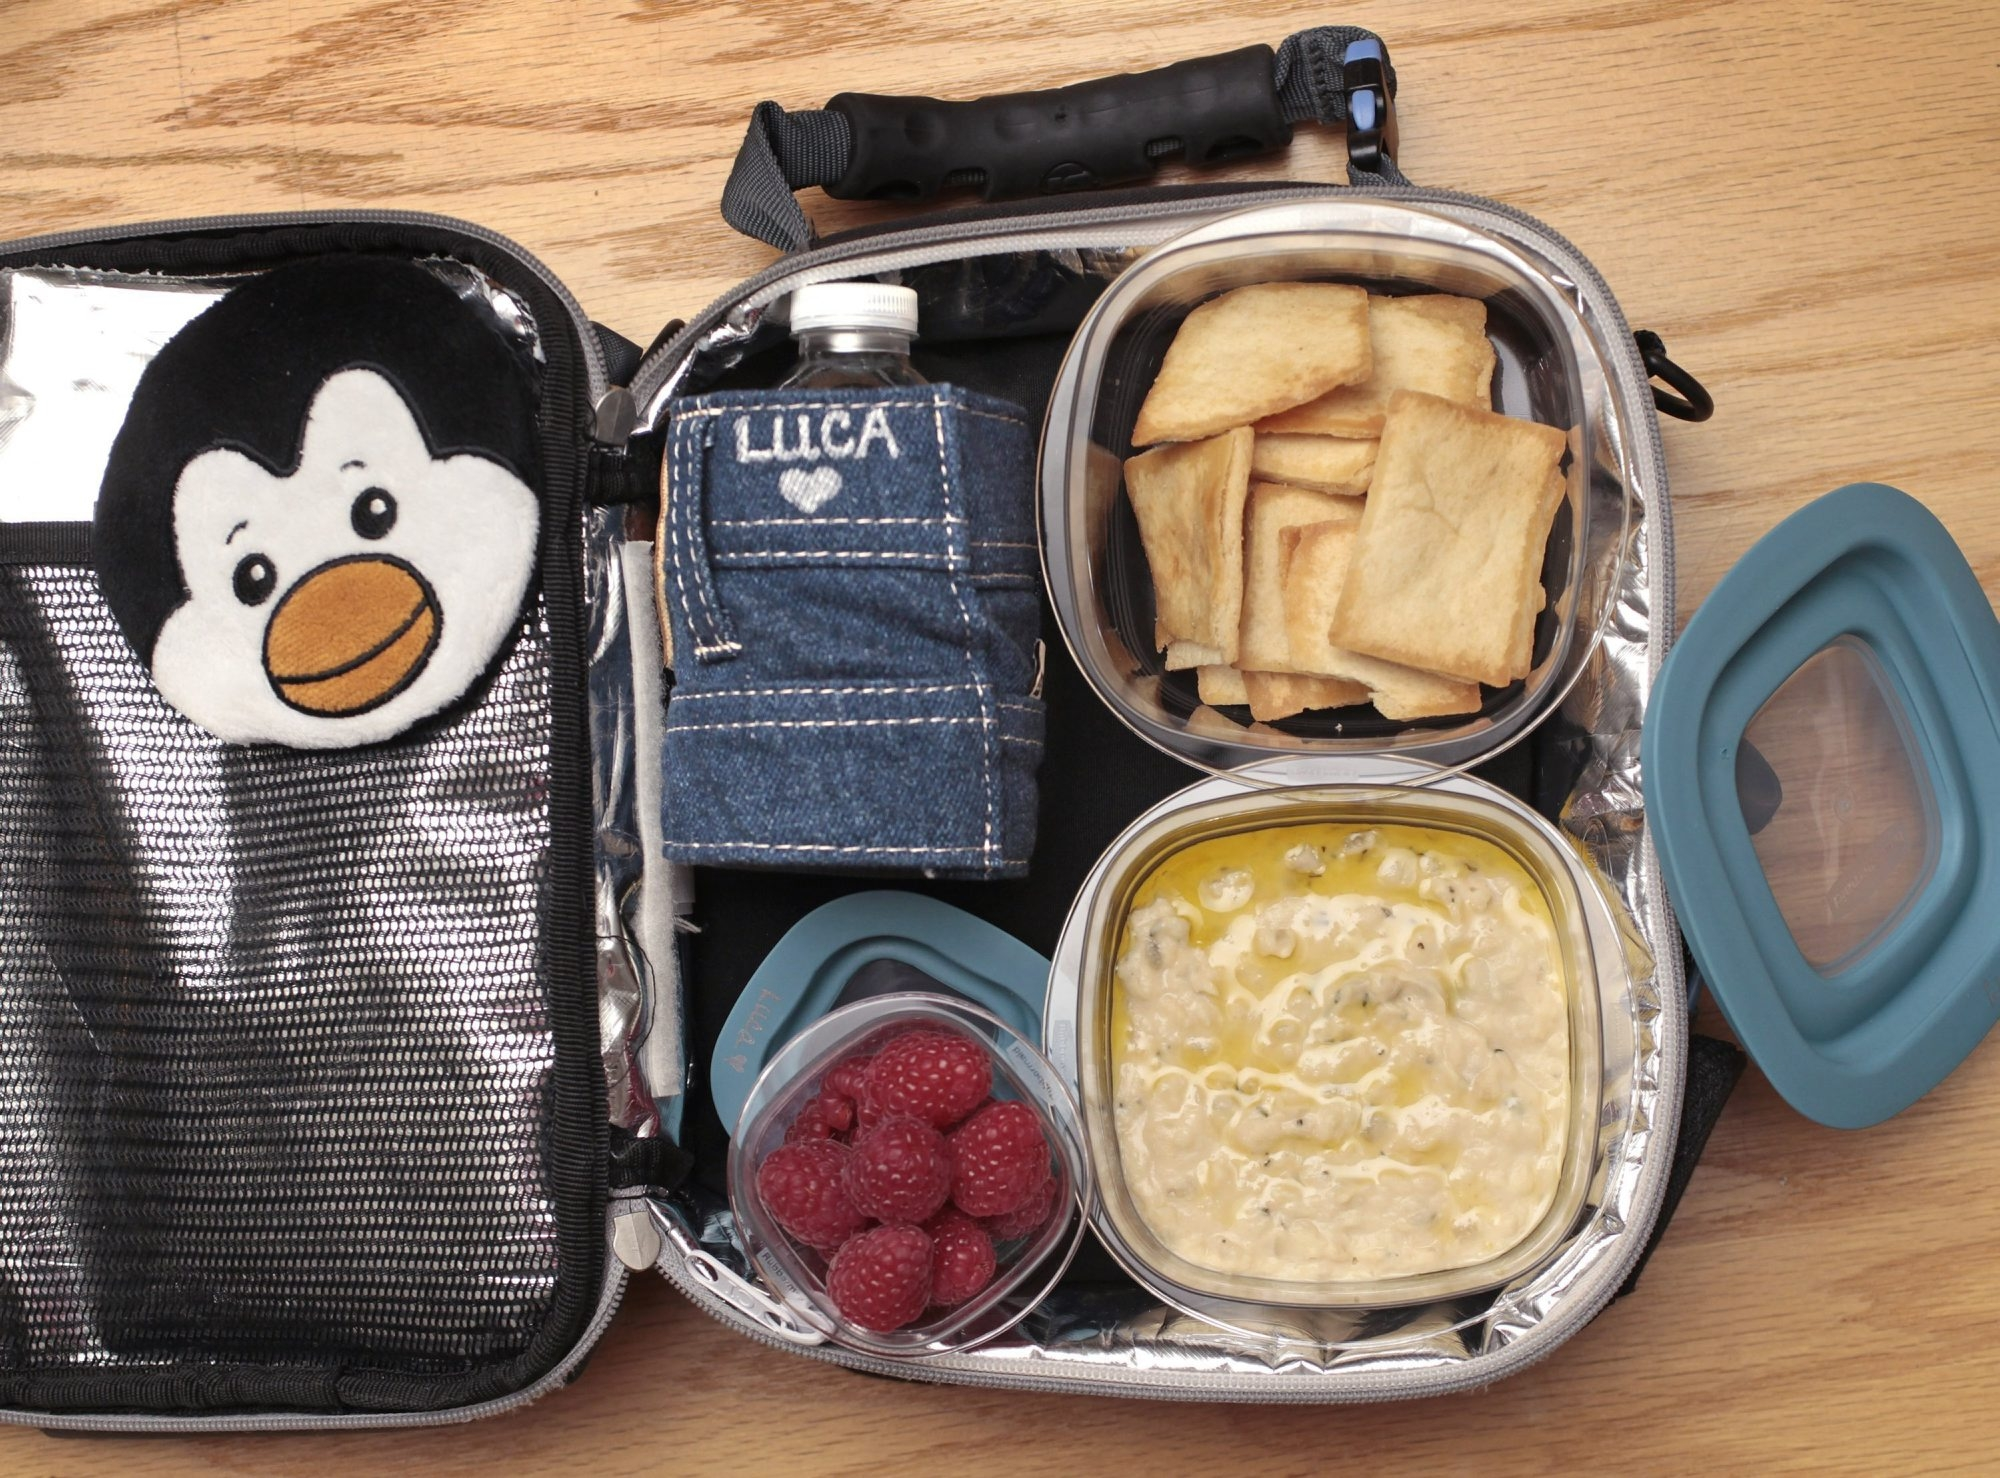 Varying lunch items can keep things fun for kids, such as this cannellini bean dip with pita chips.